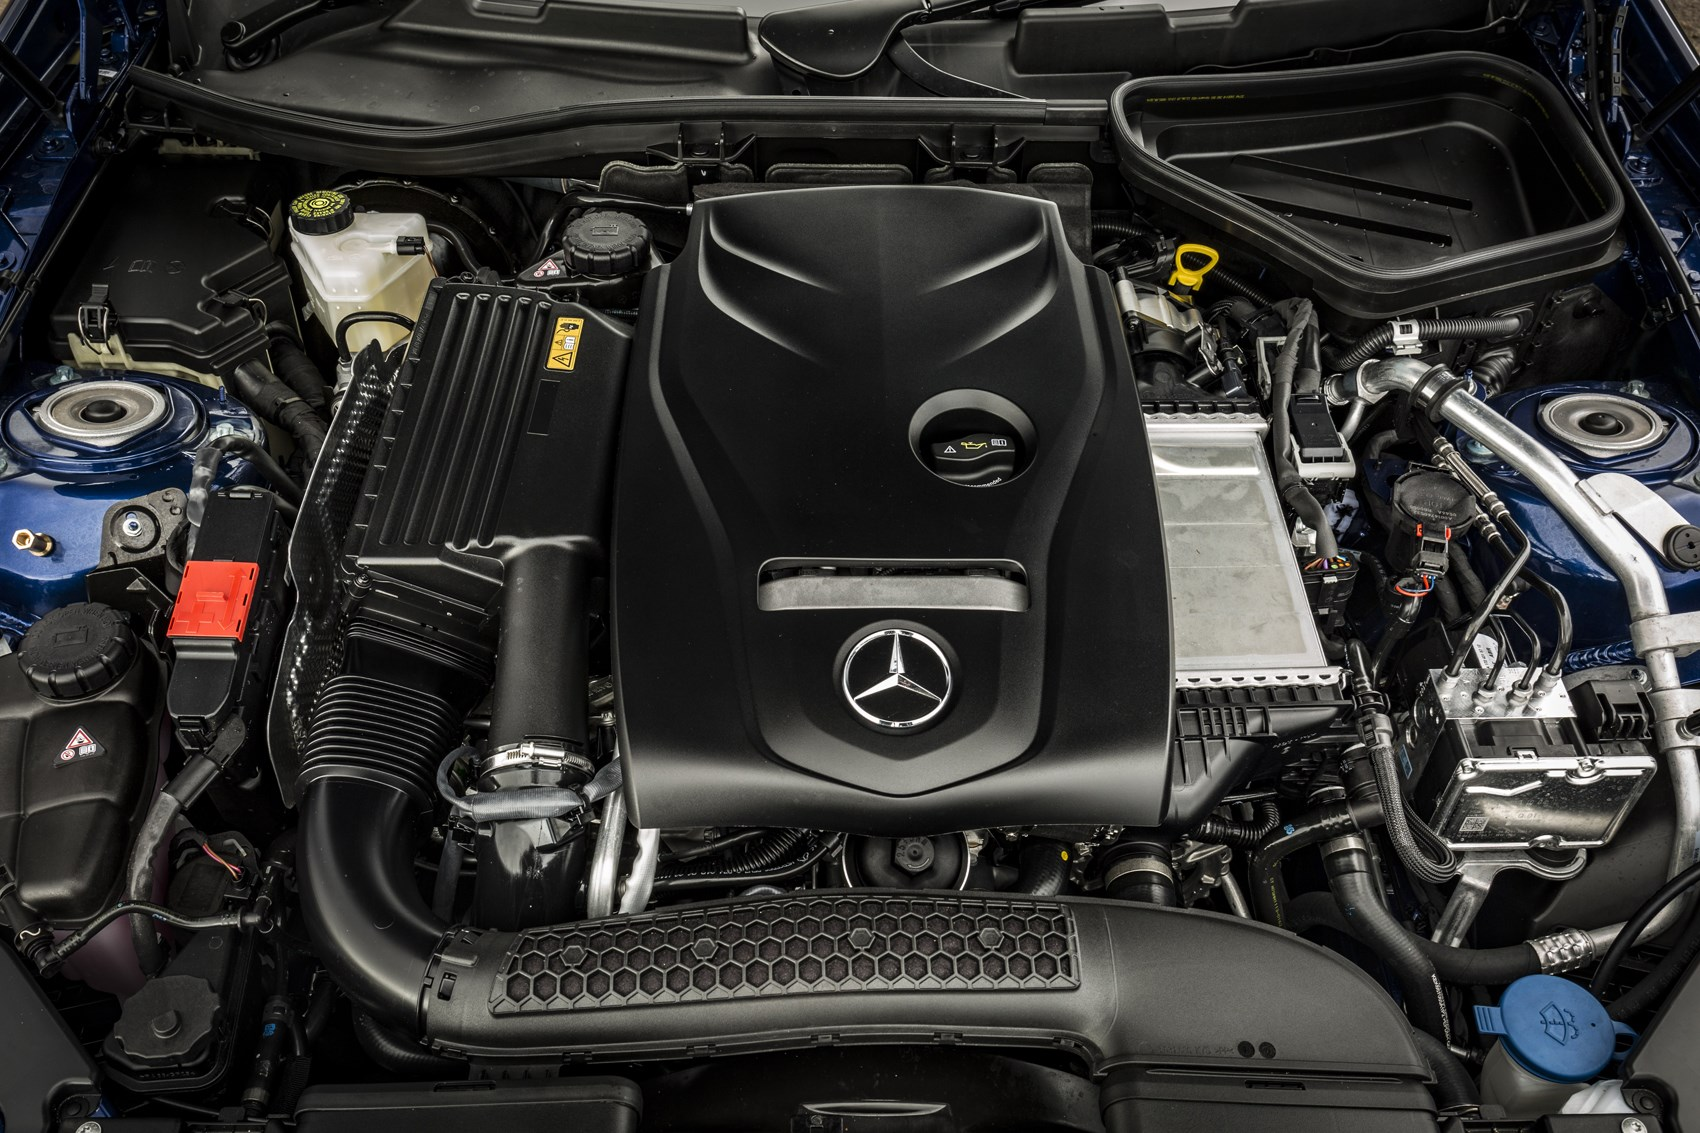 Mercedes benz slc class convertible review 2016 parkers for Mercedes benz engine